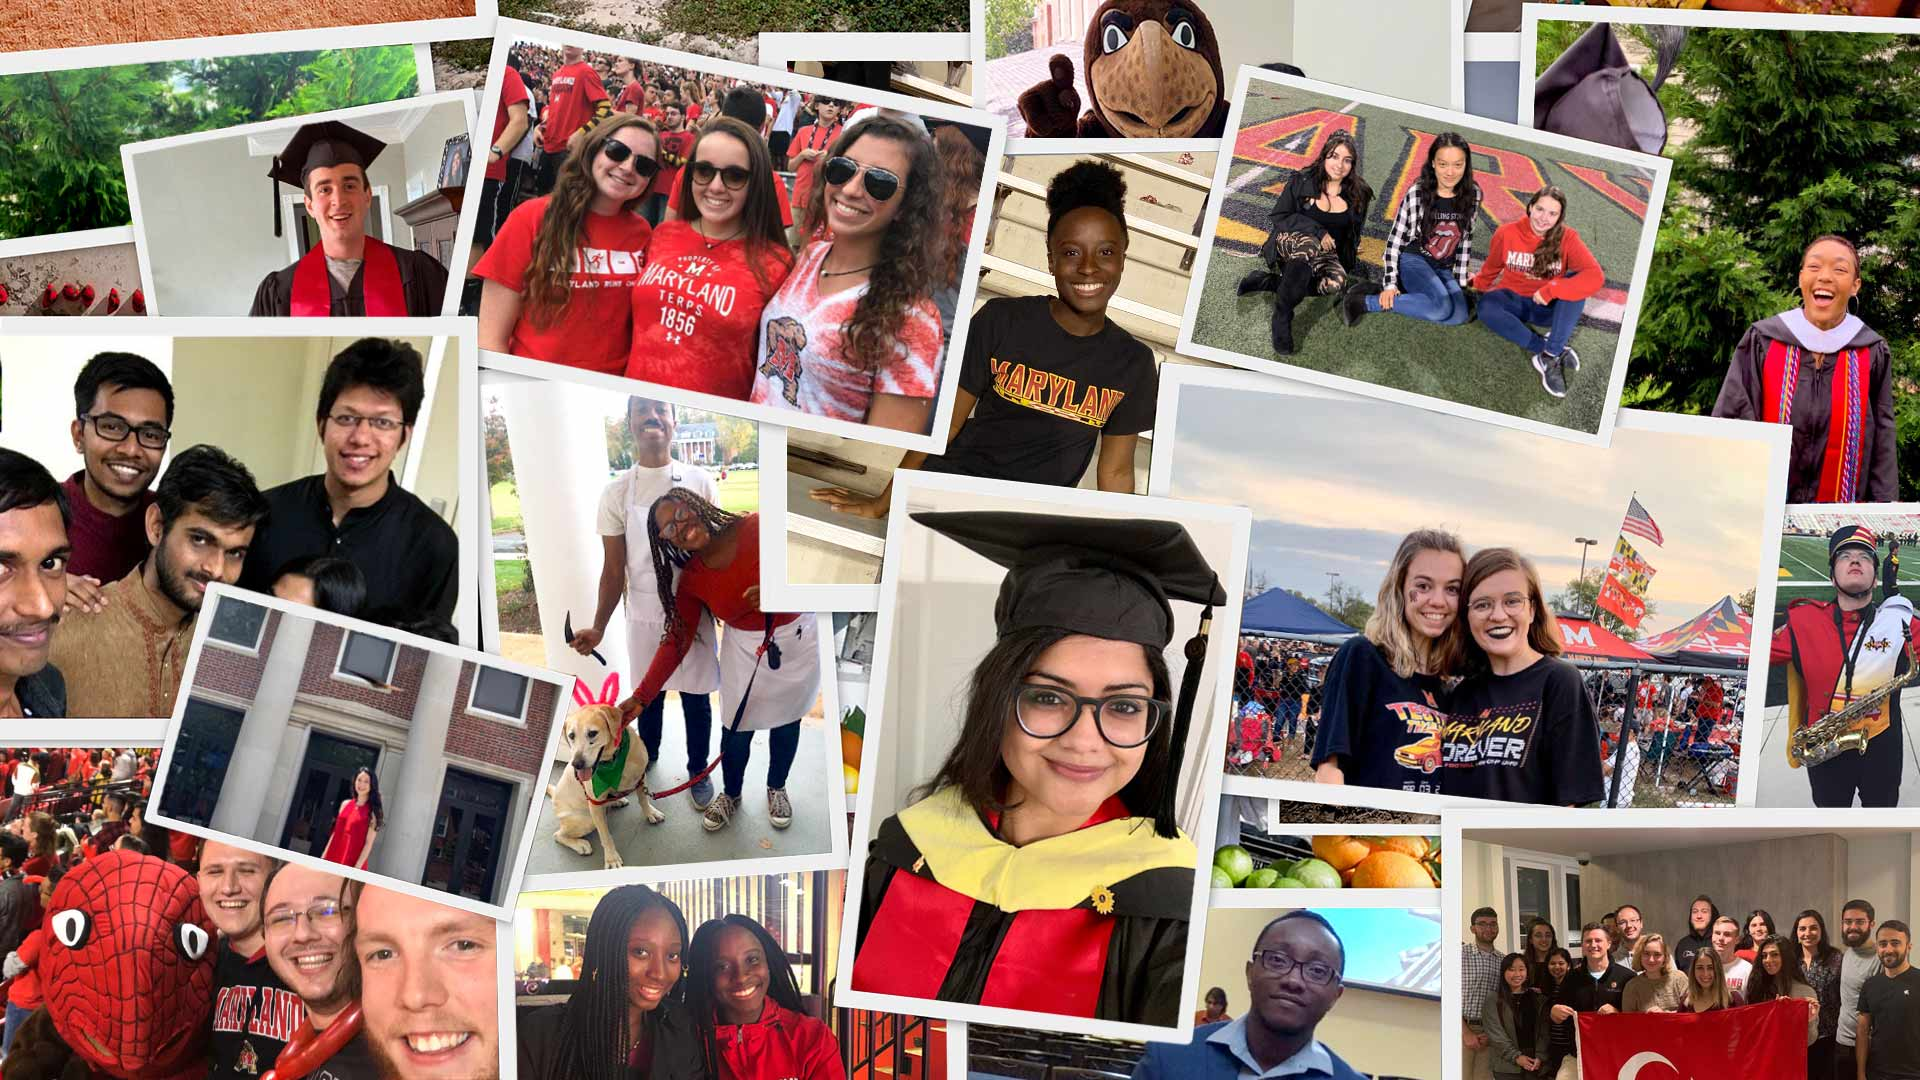 Leading up to today's virtual commencement ceremony, UMD invited Spring 2020 graduates to share photos, videos and messages of memories, experiences and hope with fellow Terps using the hashtag #UMDgrad on social media. (Photos courtesy of students and their families; frames by iStock; collage by Stephanie S. Cordle)